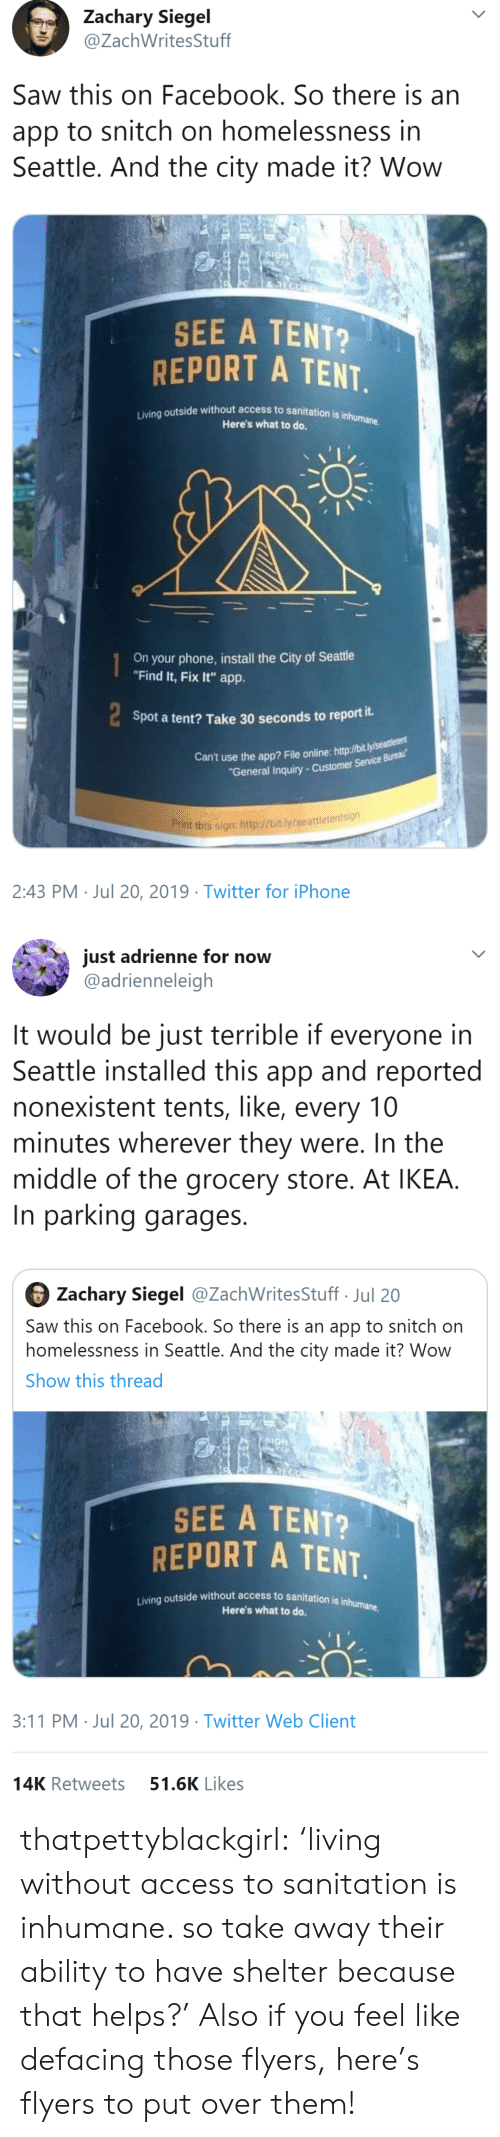 "Facebook, Ikea, and Iphone: Zachary Siegel  @ZachWritesStuff  Saw this on Facebook. So there is an  app to snitch on homelessness in  Seattle. And the city made it? Wow  SIGN  SEE A TENT?  REPORT A TENT  Living outside without access to sanitation is inhumane.  Here's what to do.  On your phone,install the City of Seattle  ""Find It, Fix It"" app.  Spot a tent? Take 30 seconds to report it.  Can't use the app? File online: http://bit.ly/seaeu  ""General Inquiry-Customer Service Bureau  Print this sign: http://bit.ly/seattletentsign  2:43 PM Jul 20, 2019 Twitter for iPhone   just adrienne for now  @adrienneleigh  It would be just terrible if everyone in  Seattle installed this app and reported  nonexistent tents, like, every 10  minutes wherever they were. In the  middle of the grocery store. At IKEA.  In parking garages  Zachary Siegel @ZachWritesStuff Jul 20  Saw this on Facebook. So there is an app to snitch on  homelessness in Seattle. And the city made it? Wow  Show this thread  SIGN  SEE A TENT?  REPORT A TENT.  Living outside without access to sanitation is inhumane  Here's what to do.  3:11 PM Jul 20, 2019 Twitter Web Client  51.6K Likes  14K Retweets thatpettyblackgirl:    'living without access to sanitation is inhumane. so take away their ability to have shelter because that helps?'     Also if you feel like defacing those flyers, here's flyers to put over them!"